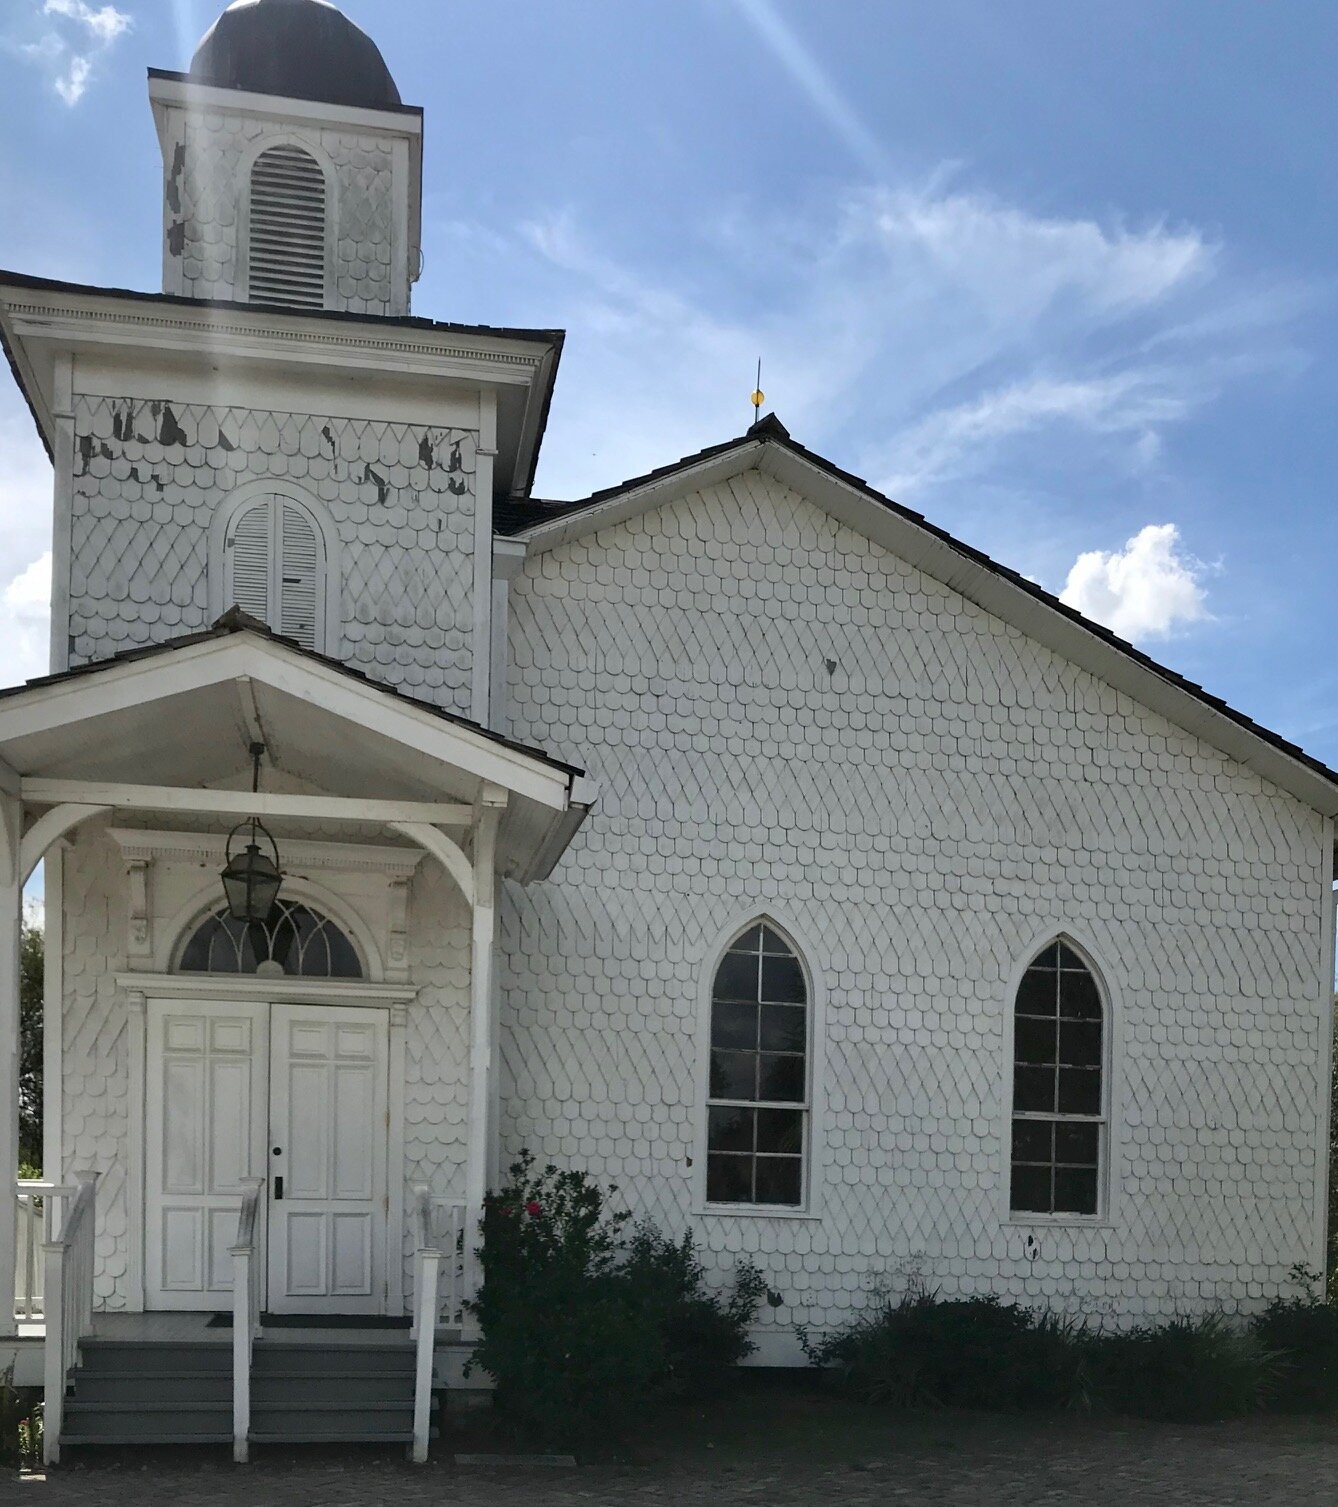 The Antioch Baptist Church, which was moved to the site, but founded by formerly enslaved men following emancipation.